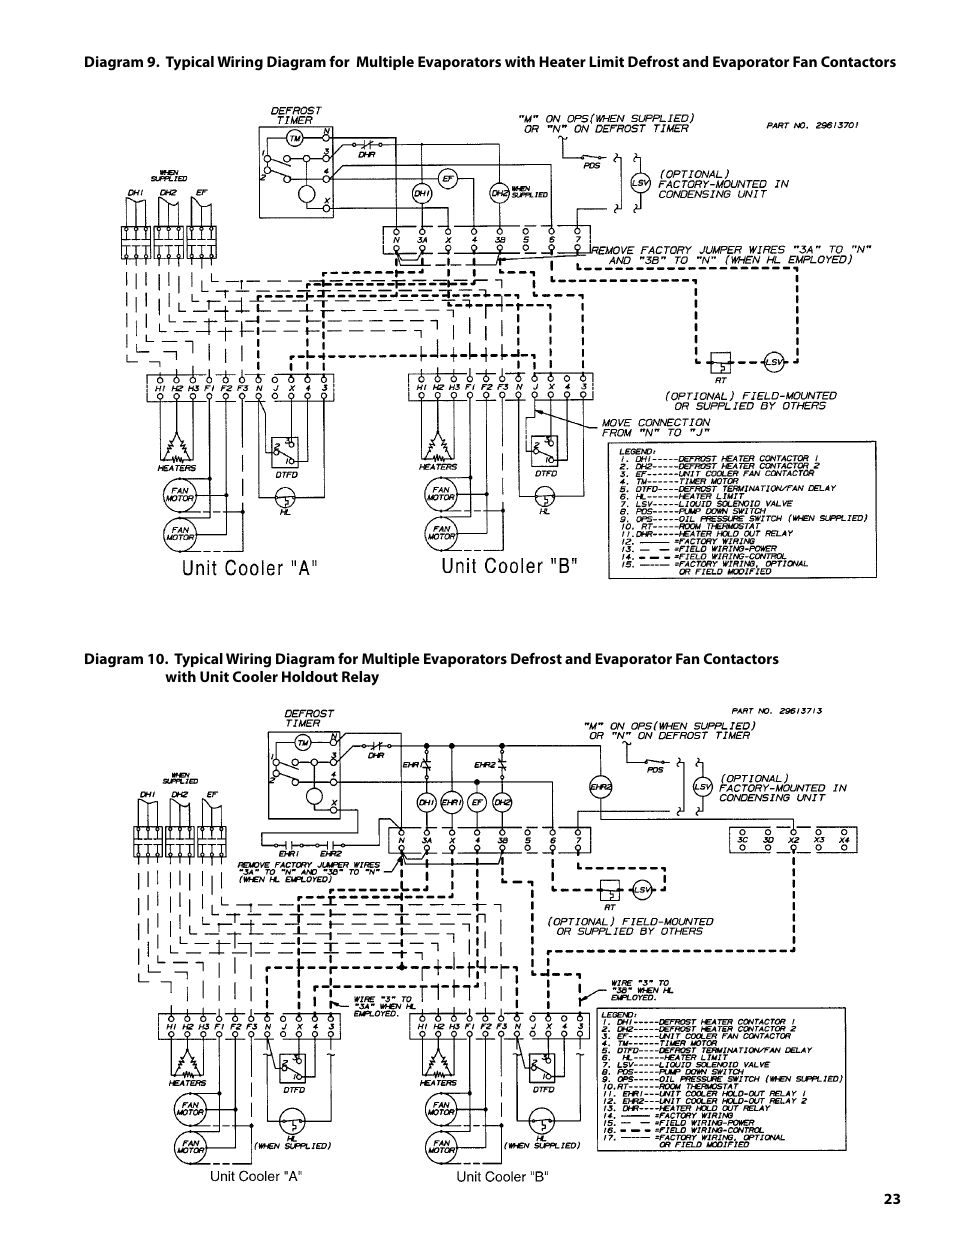 heatcraft refrigeration products condensing units h im cu page23 walk in zer wiring diagram diagram wiring diagrams for diy car walk in freezer wiring schematics at nearapp.co